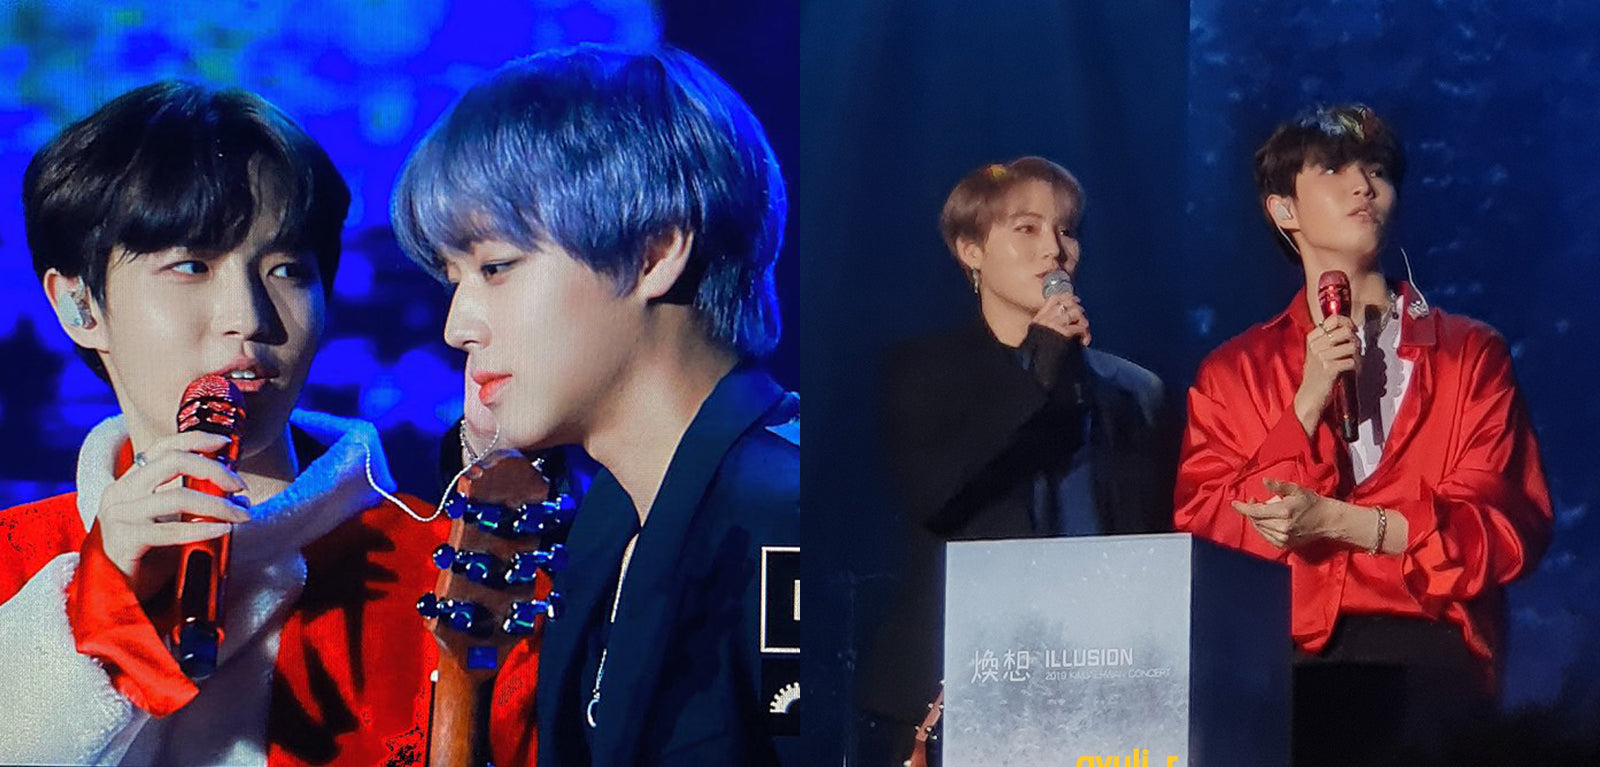 Wanna One: PARK JIHOON and HA SUNG WOON went on stage with KIM JAE HWAN during his first solo concert